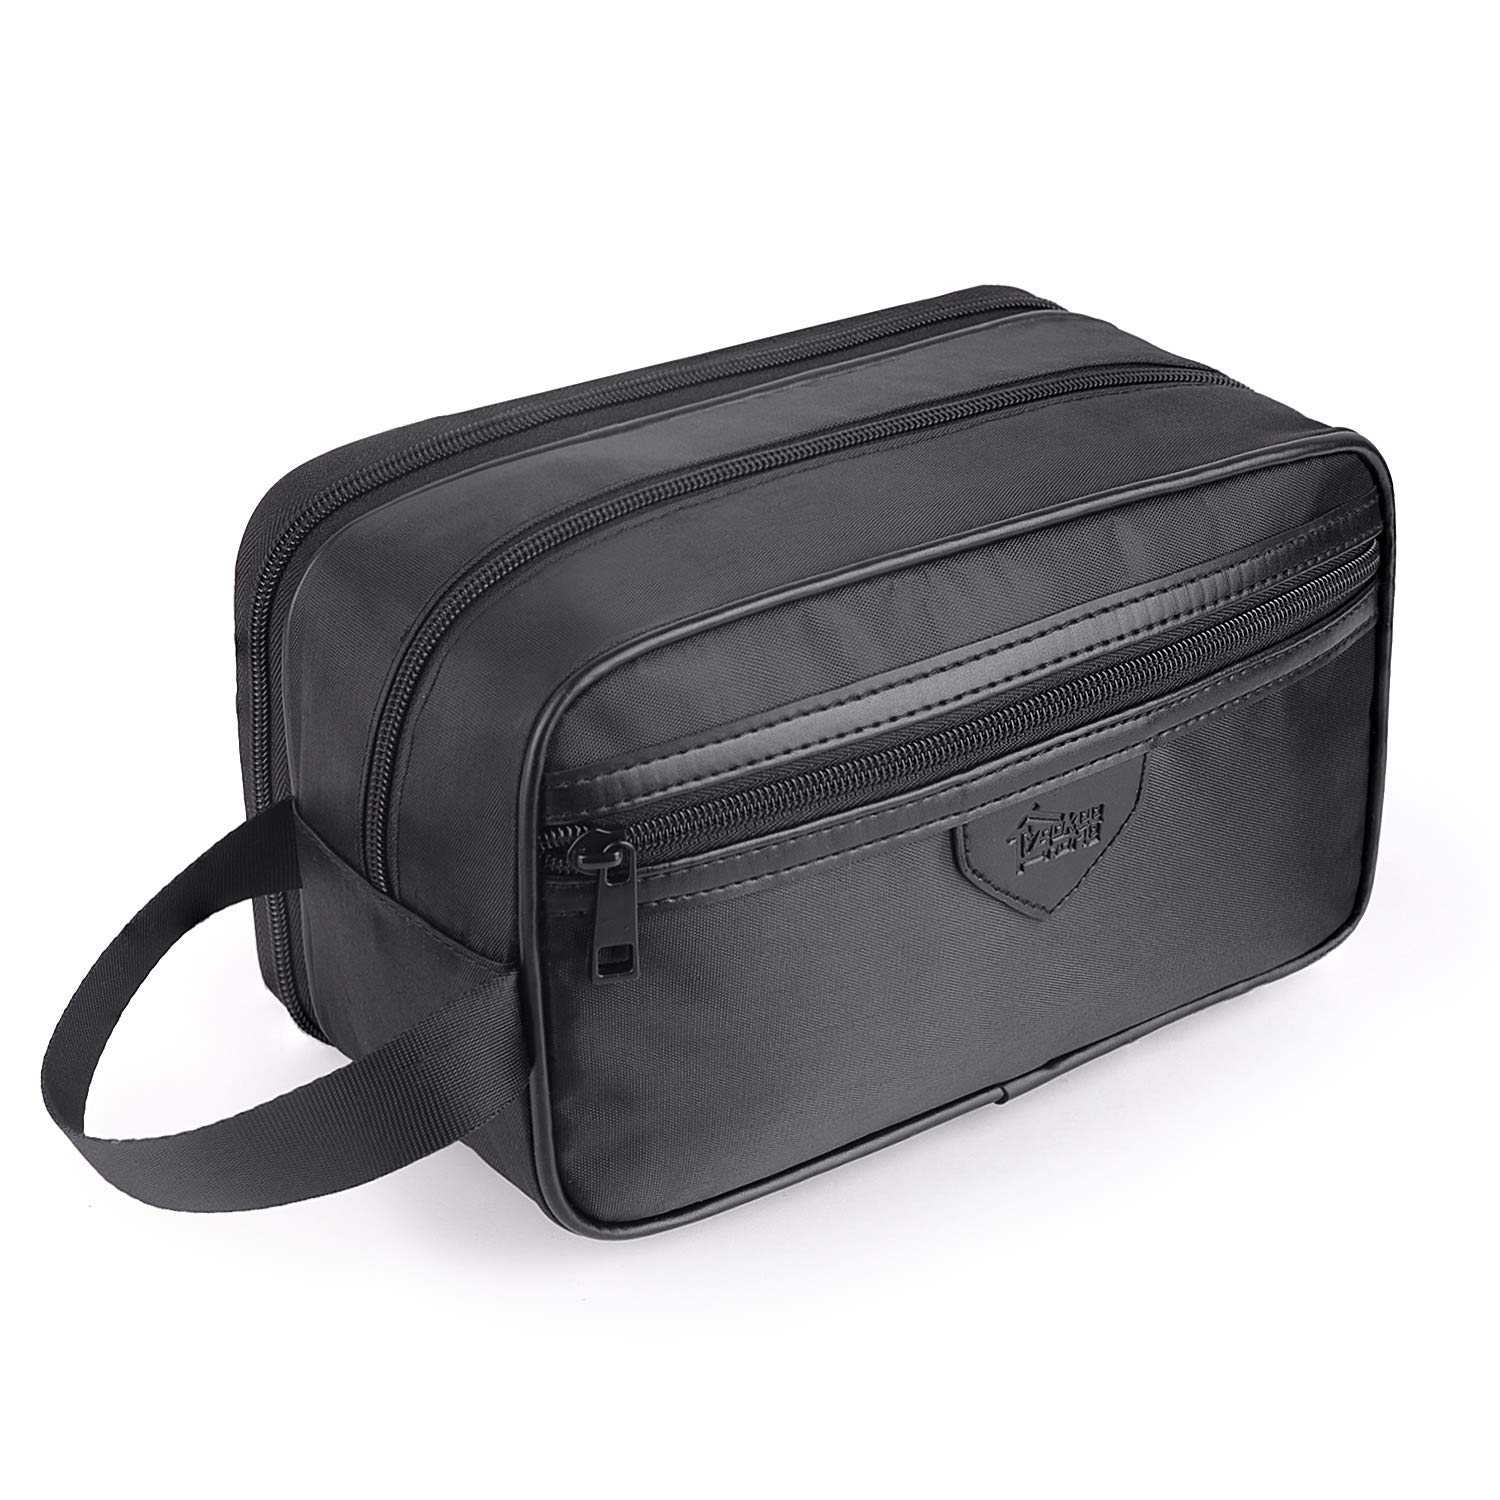 Toiletry Bag for Men Women Waterproof Yookeehome Travel Dopp Kit Shaving Bag Bathroom bag Black Nylon